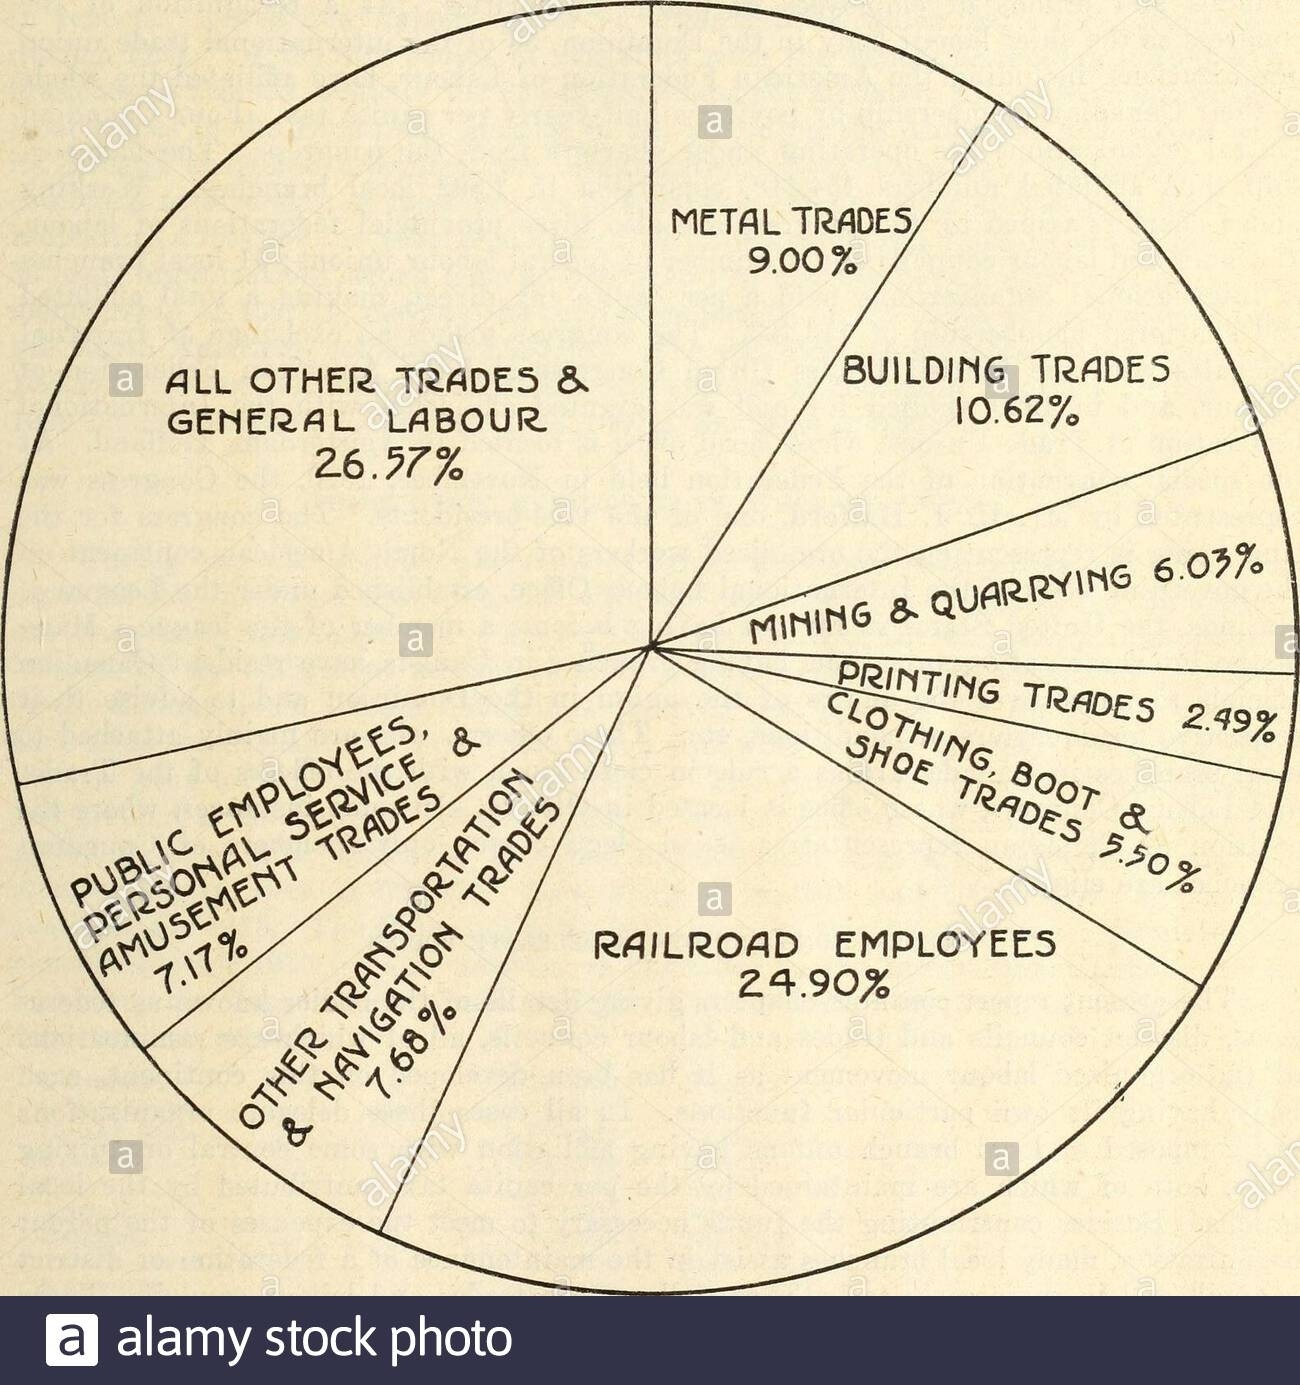 Annual Report Of The Labour Organizations In Canada For The  1918/1919 Financial Year Calendar